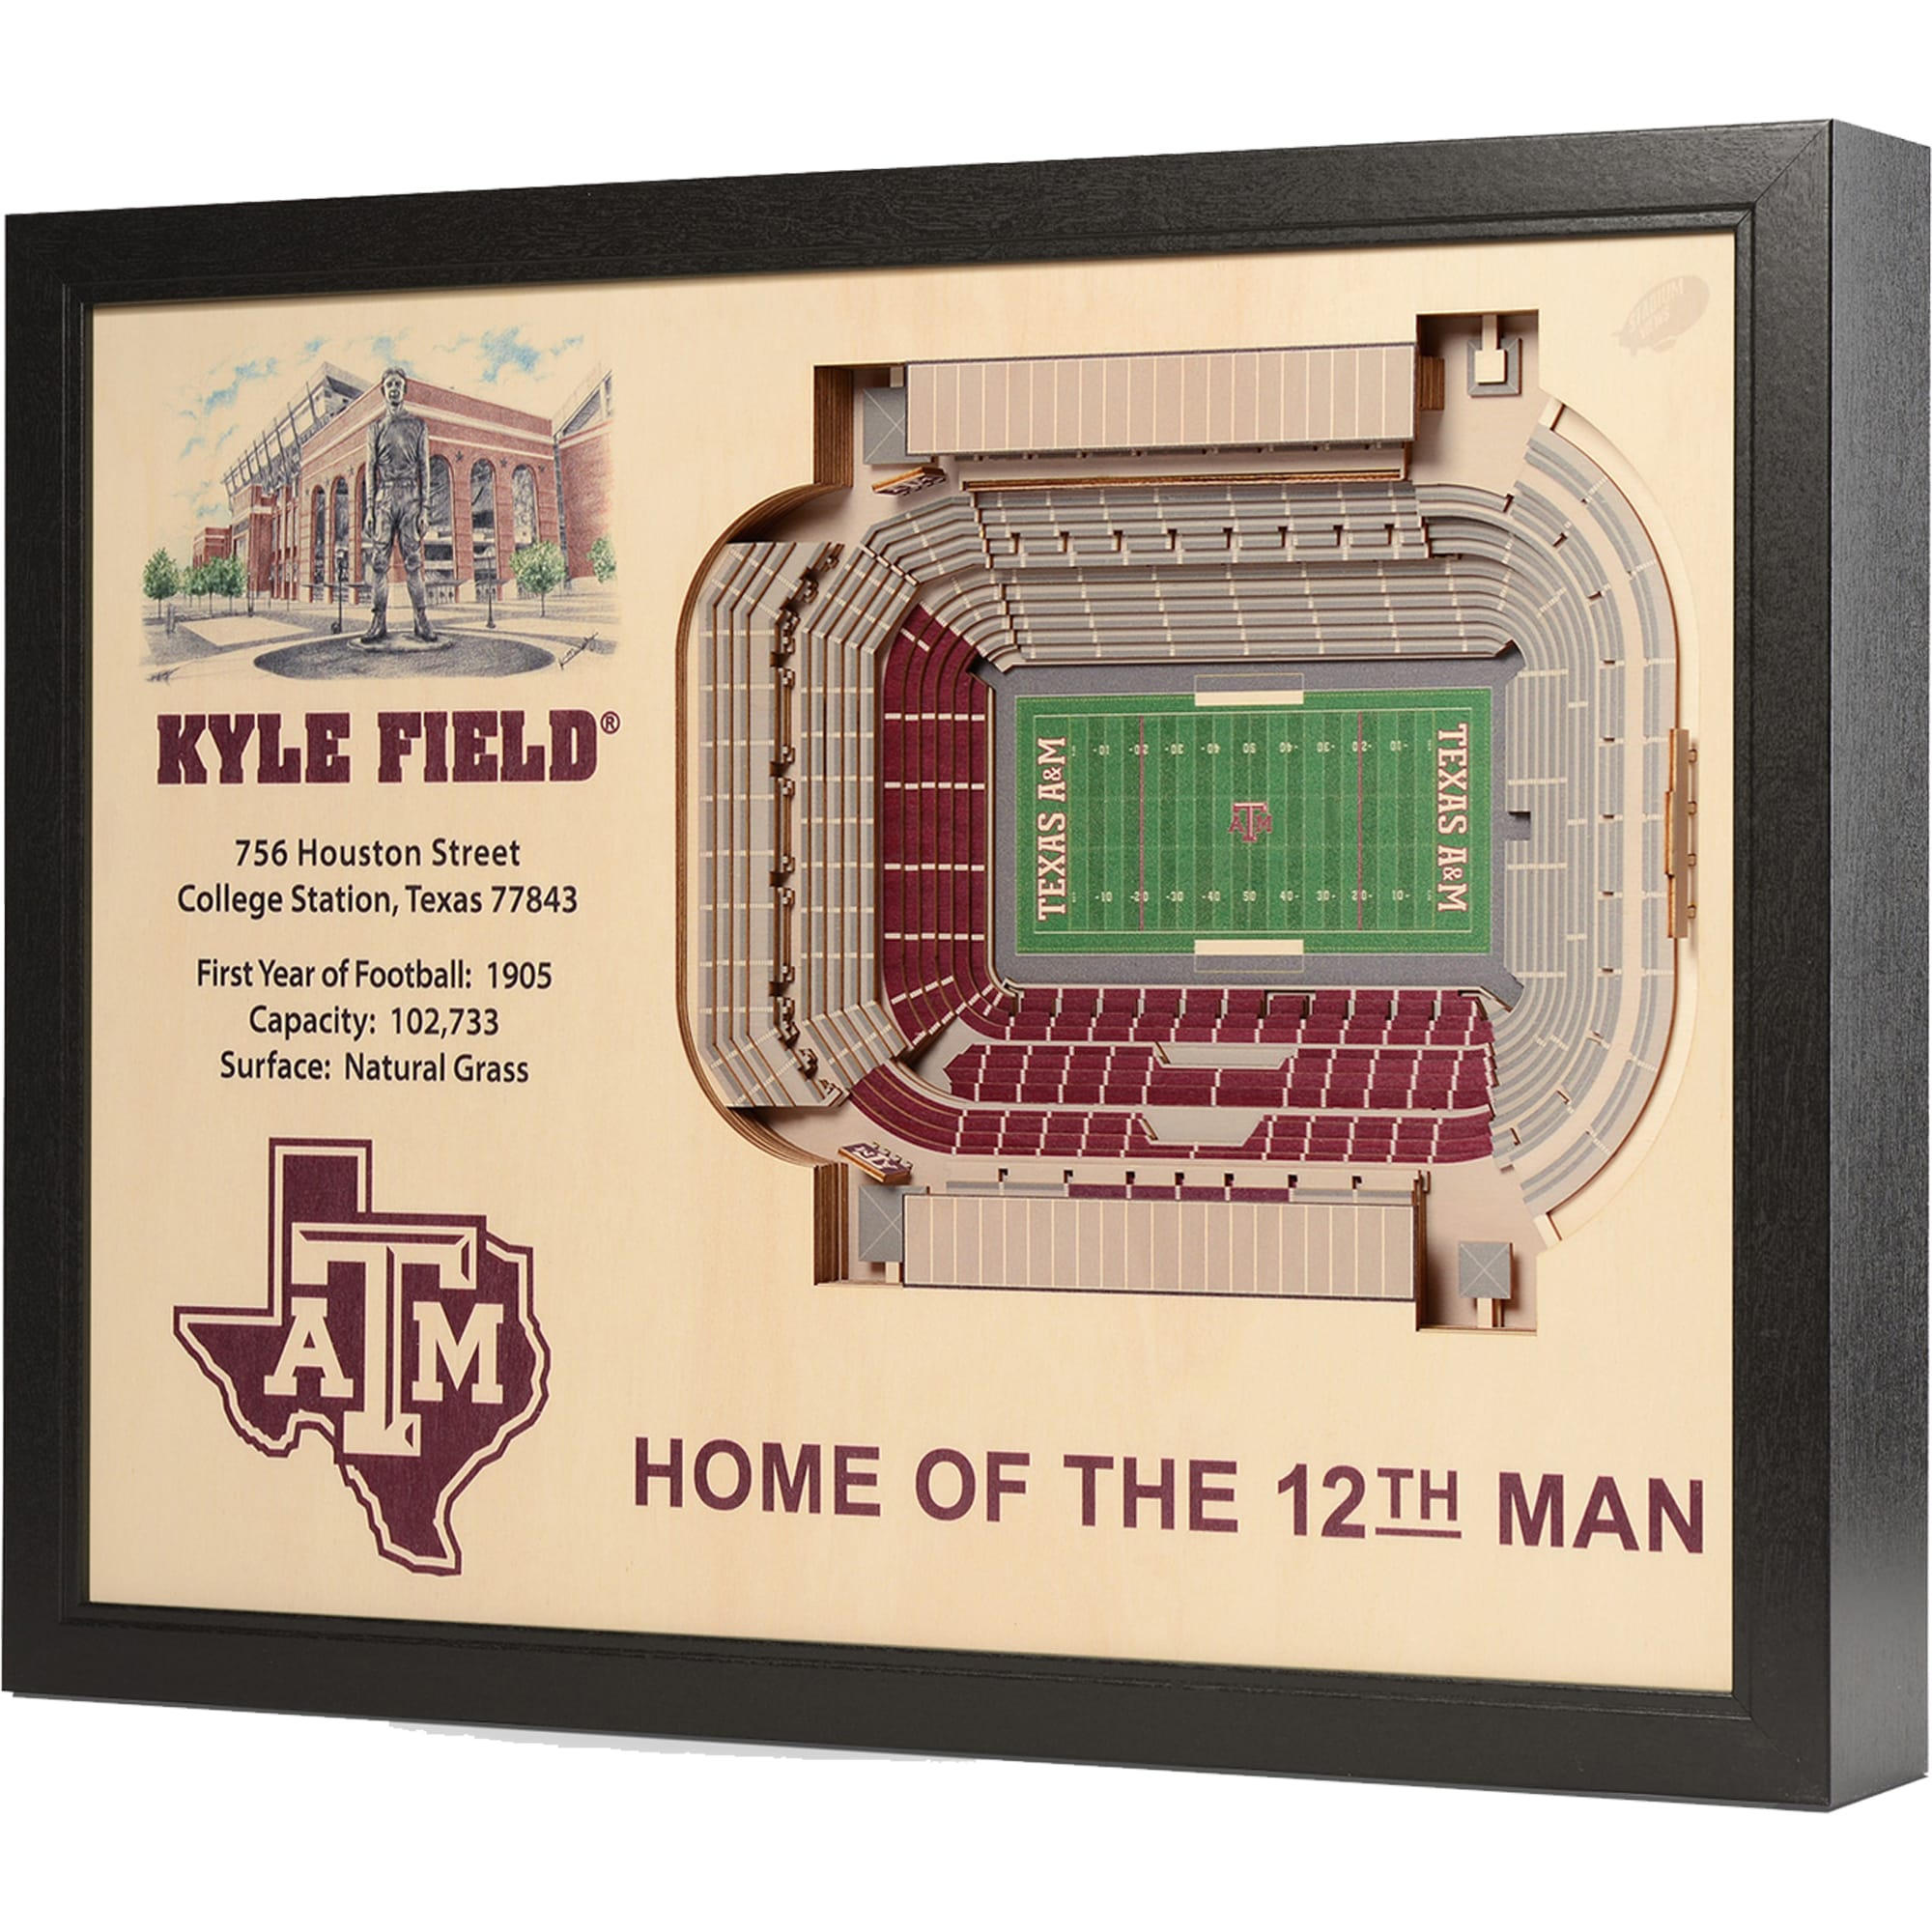 Does it look like the texas a&m crowd is following sec guidelines and. Youthefan Texas A M Aggies 25 5 X 19 5 Kyle Field Stadium Views Wall Art Walmart Com Walmart Com